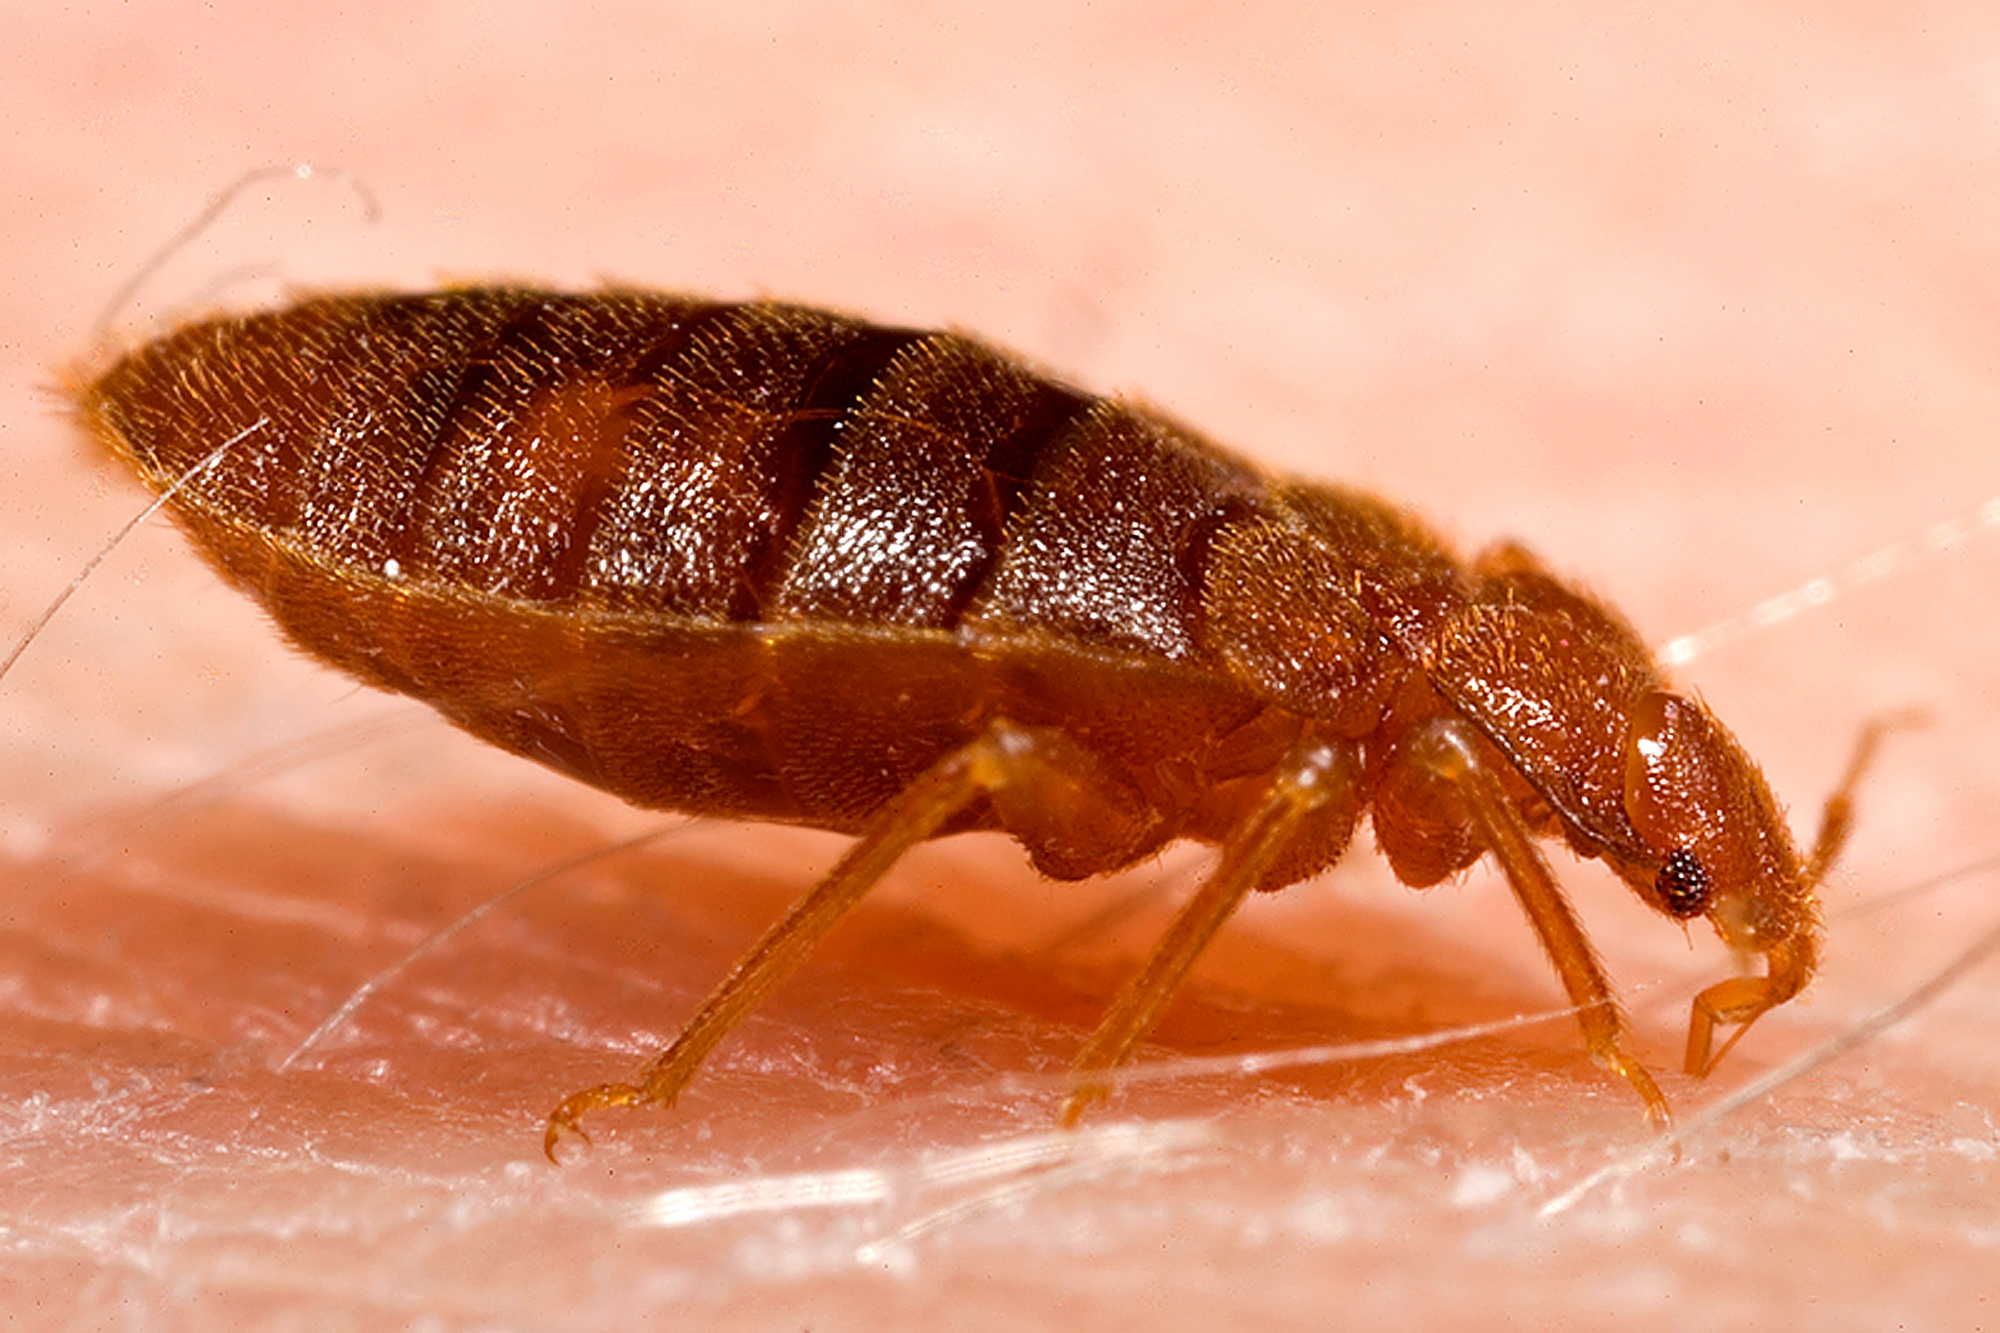 Close up of bed bug perched on human skin